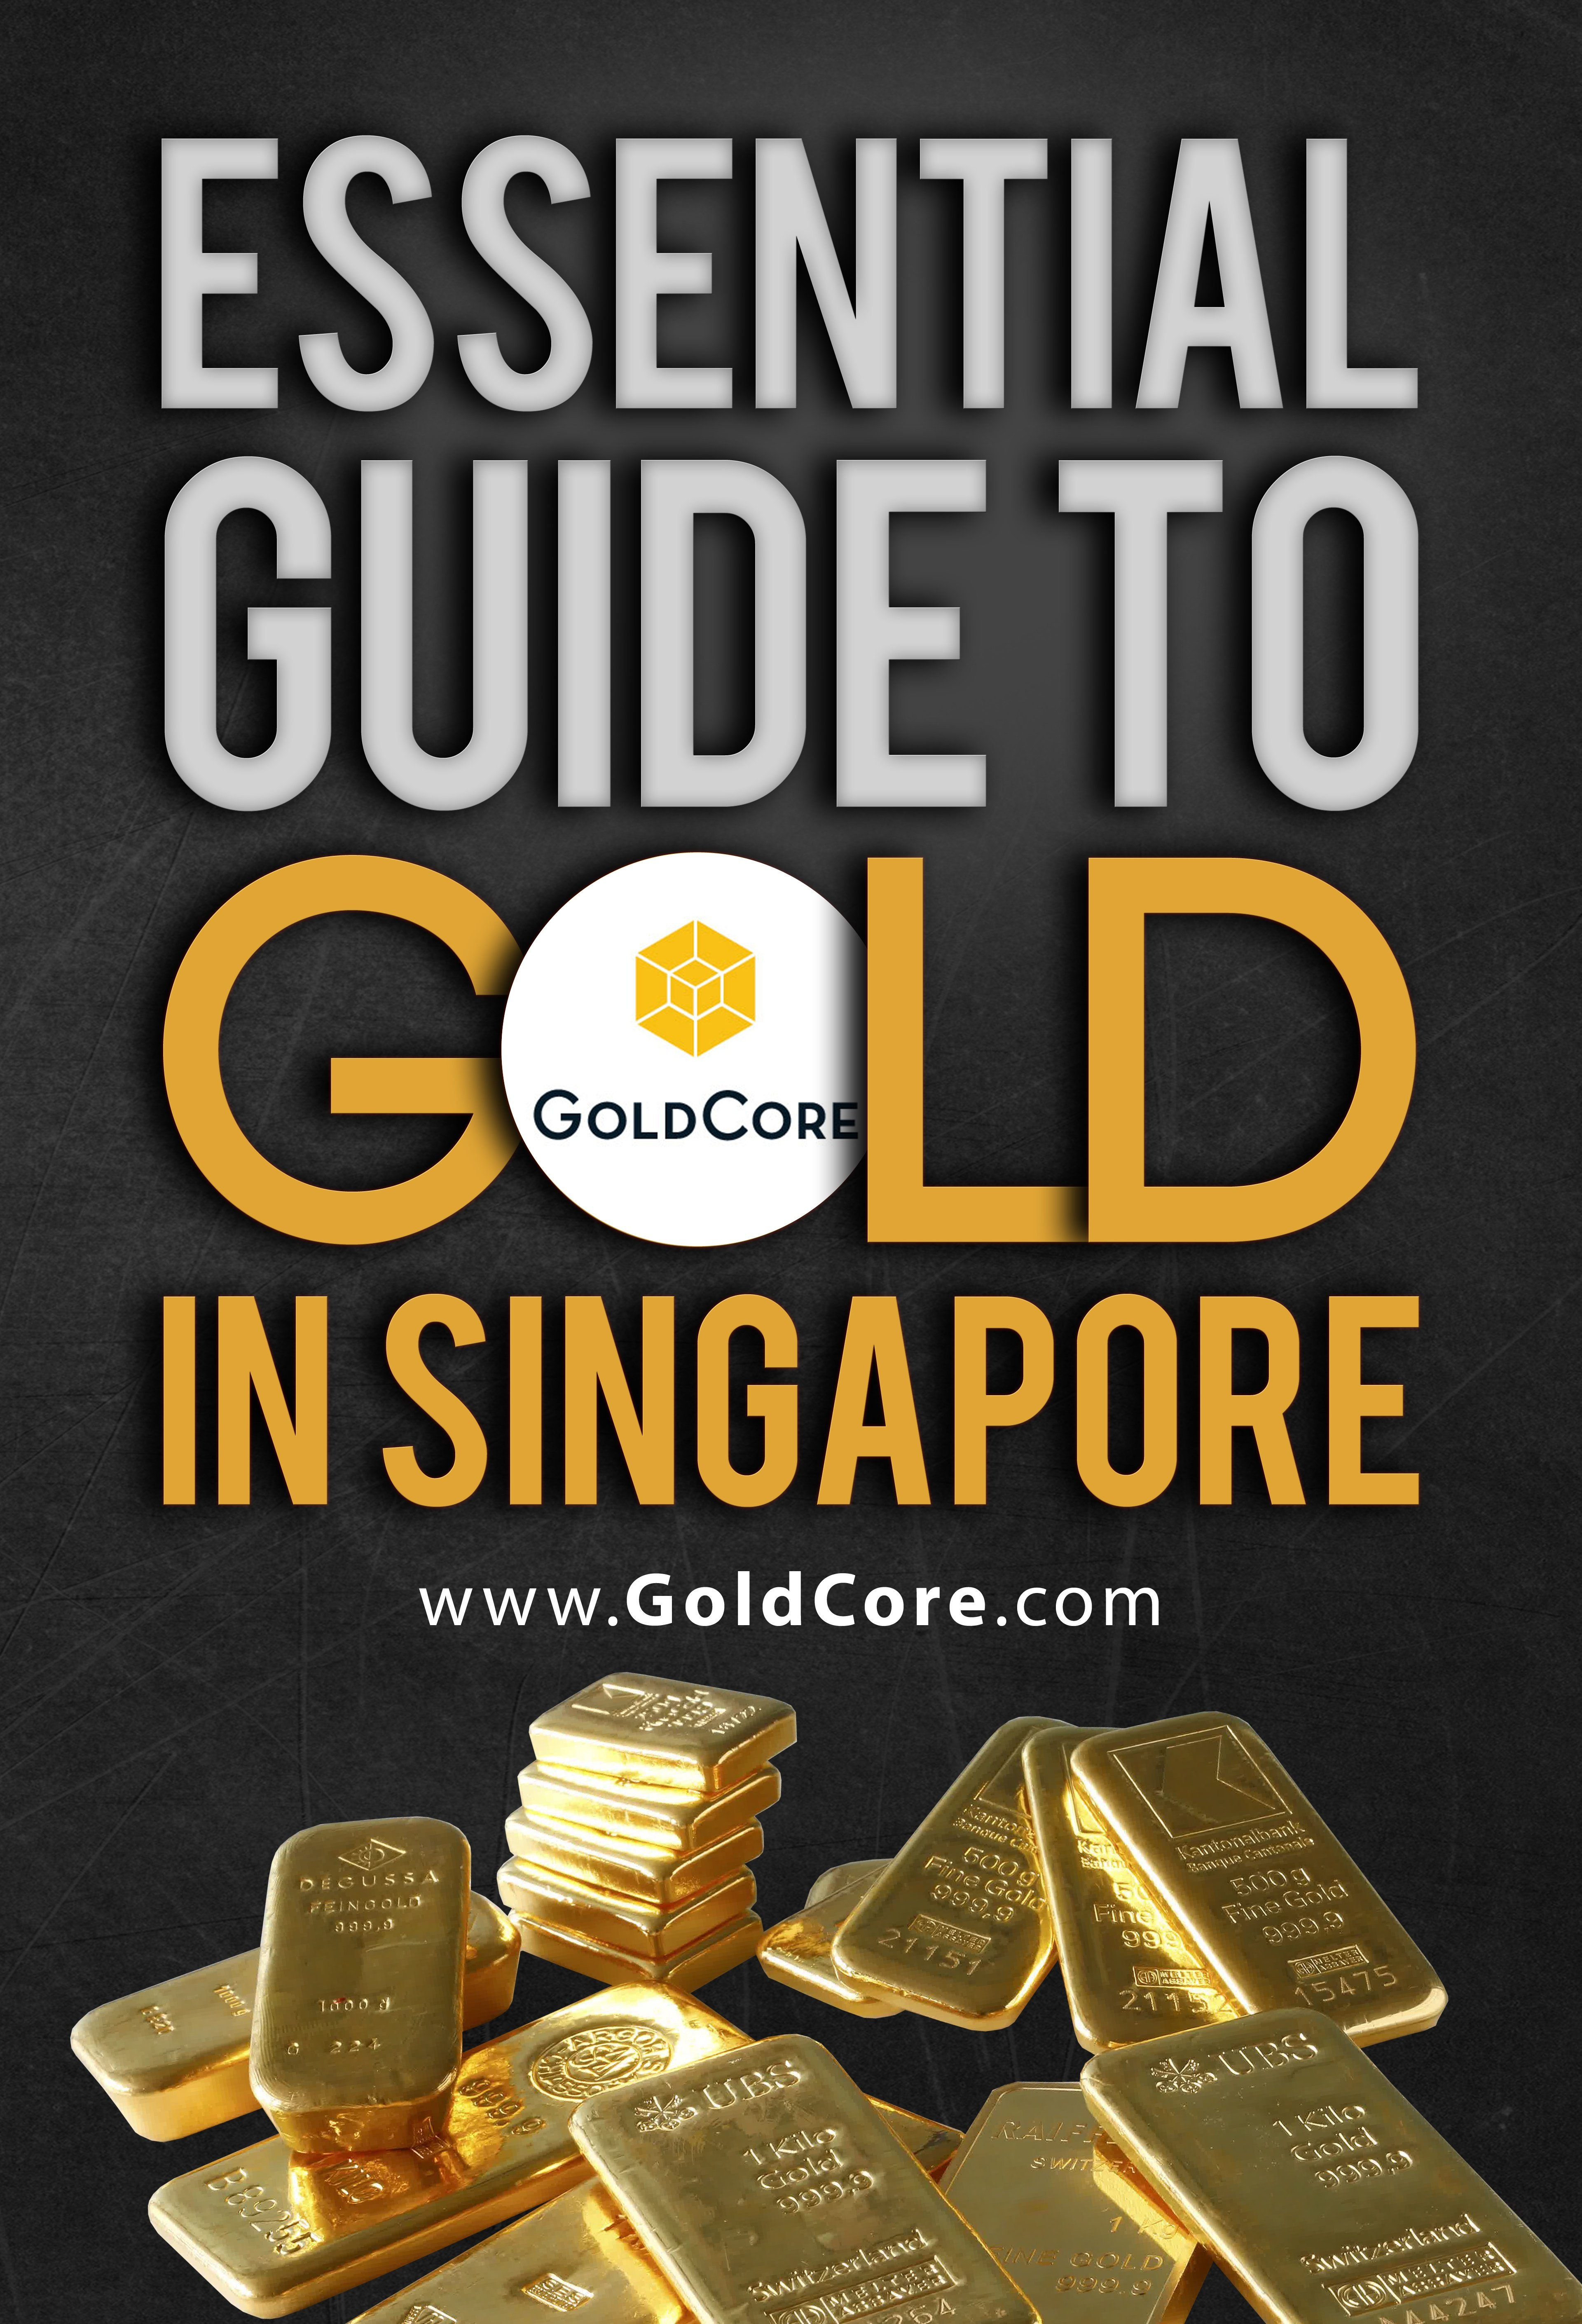 Essential_Guide_to_Storing_Gold_in_Singapore.jpg